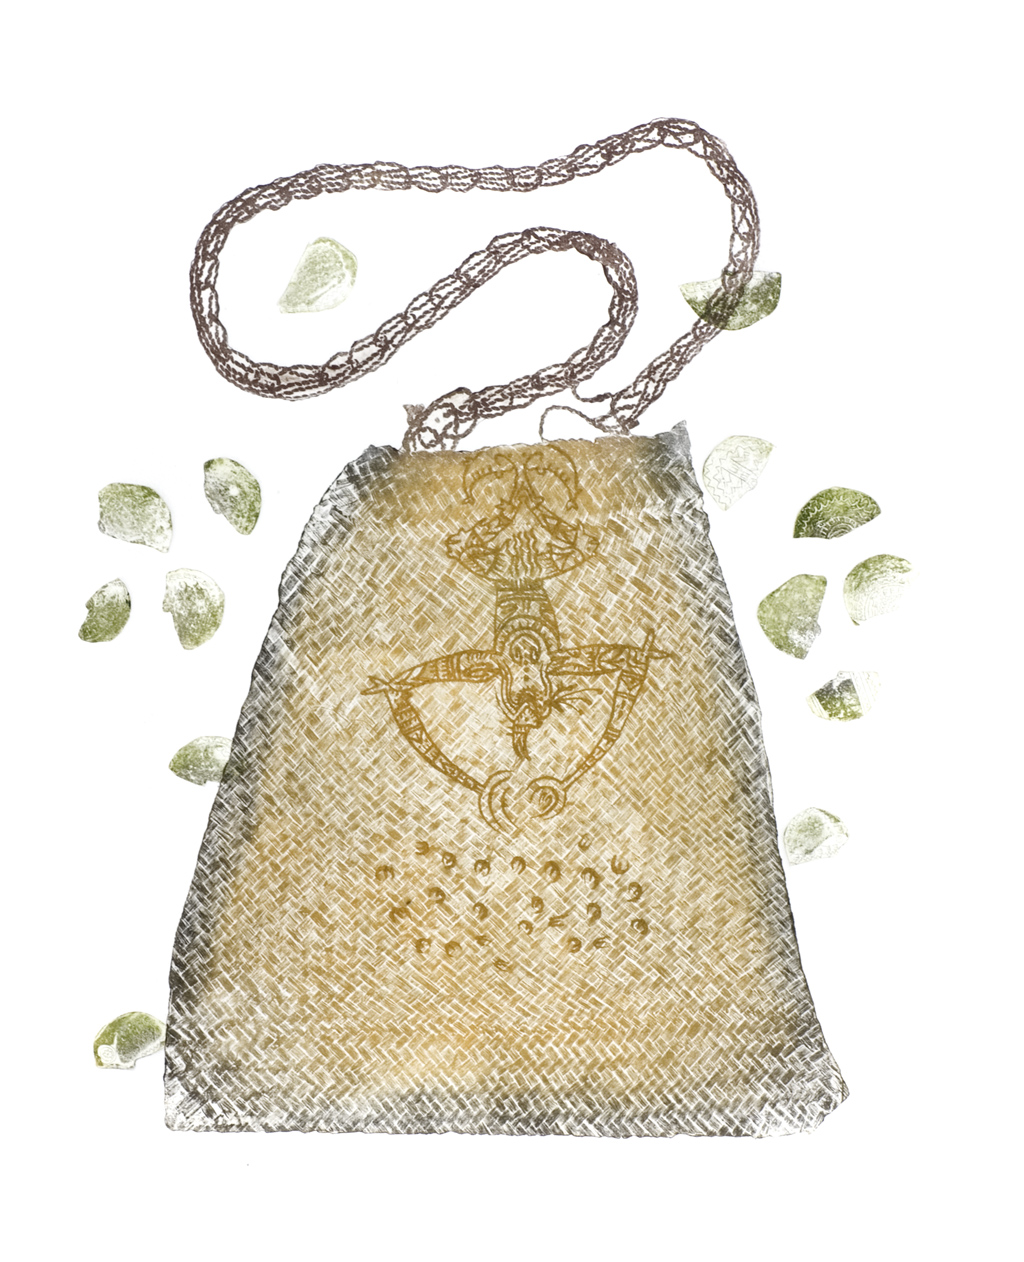 Etching of bag by Dennis Nona